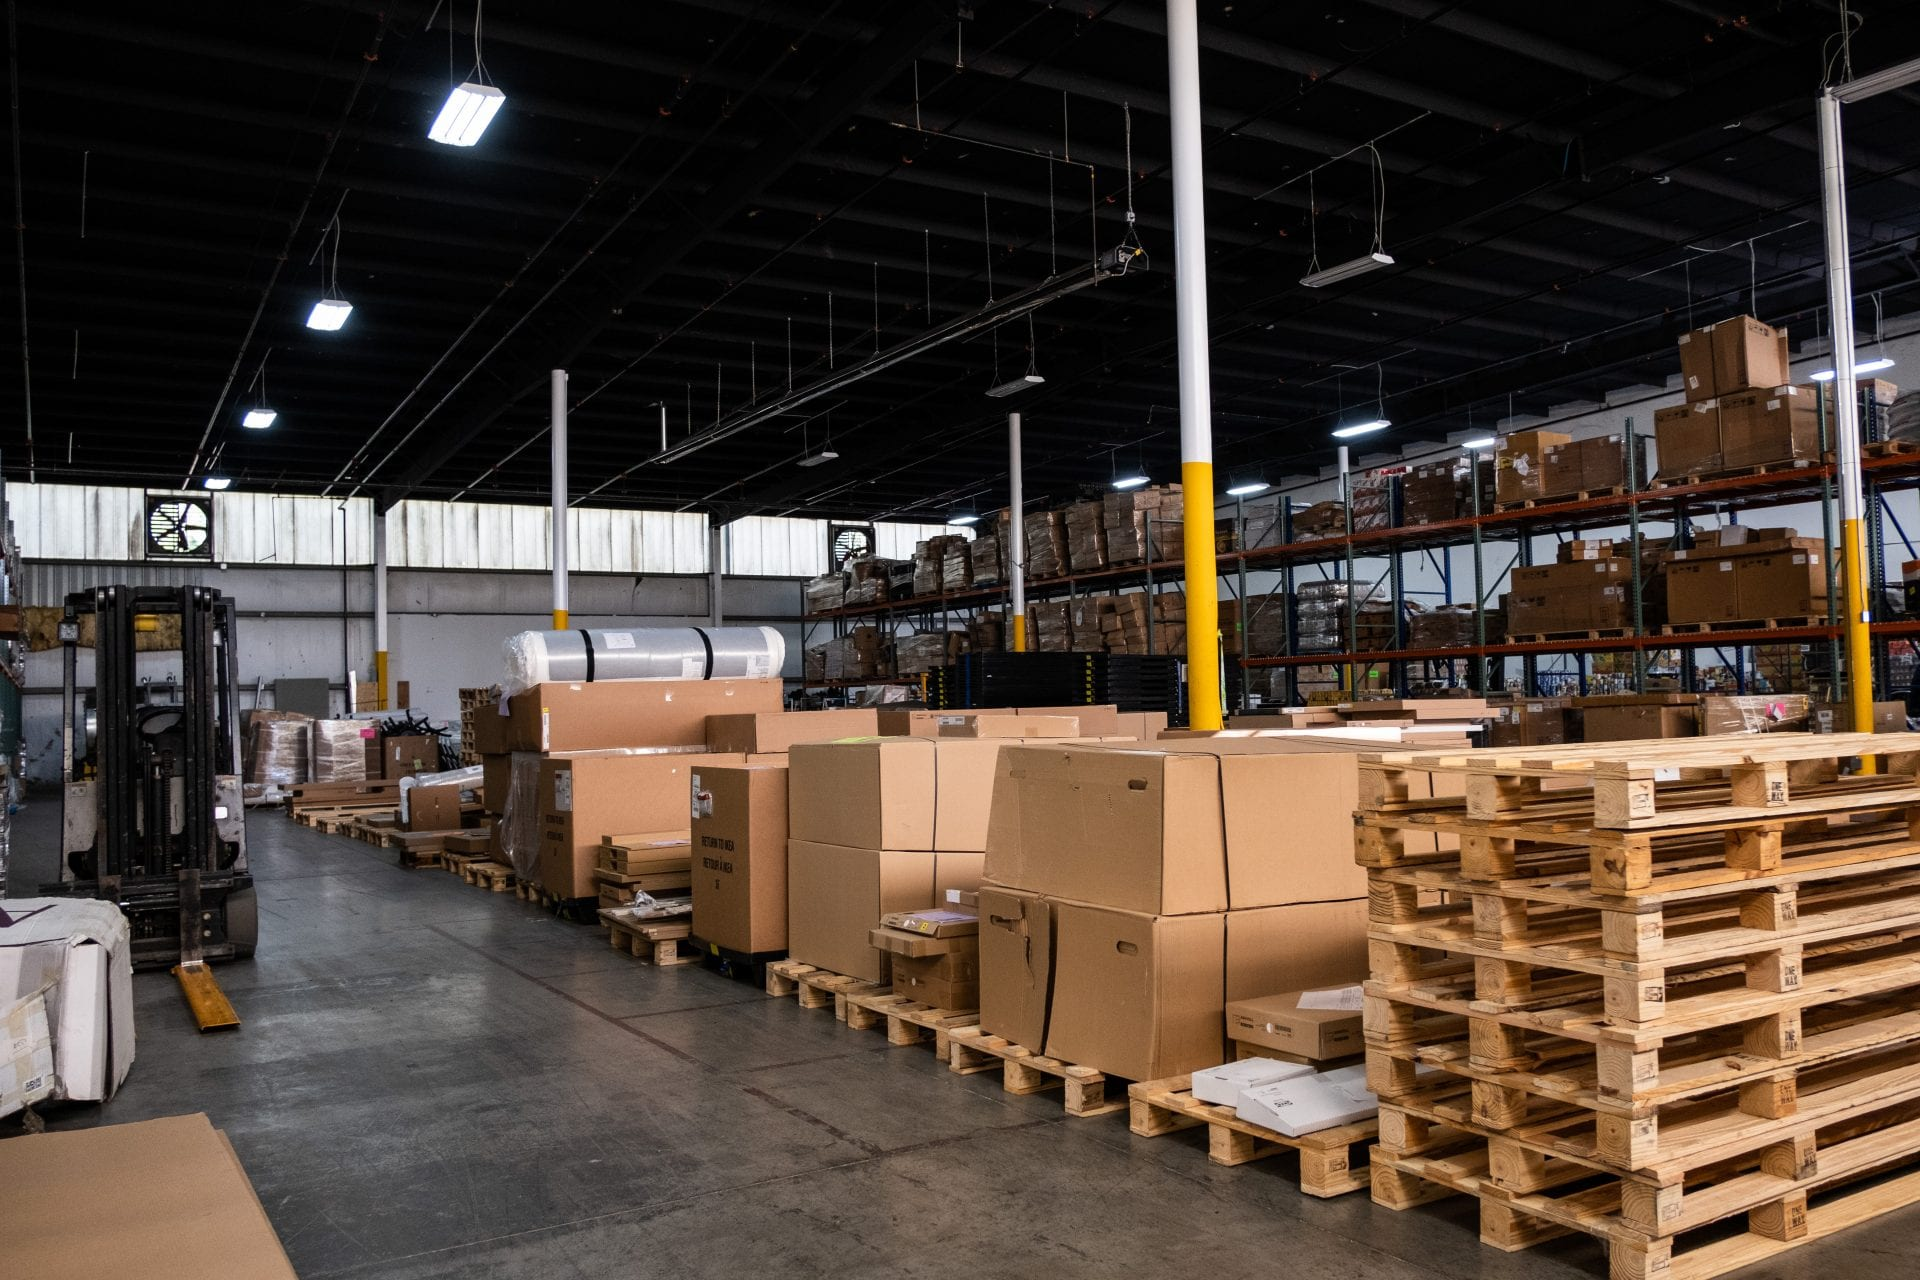 Warehouse and Fulfillment Center Nashville TN providing Shipping Services along with Business and Commercial Storage with Cross Docking and kitting services